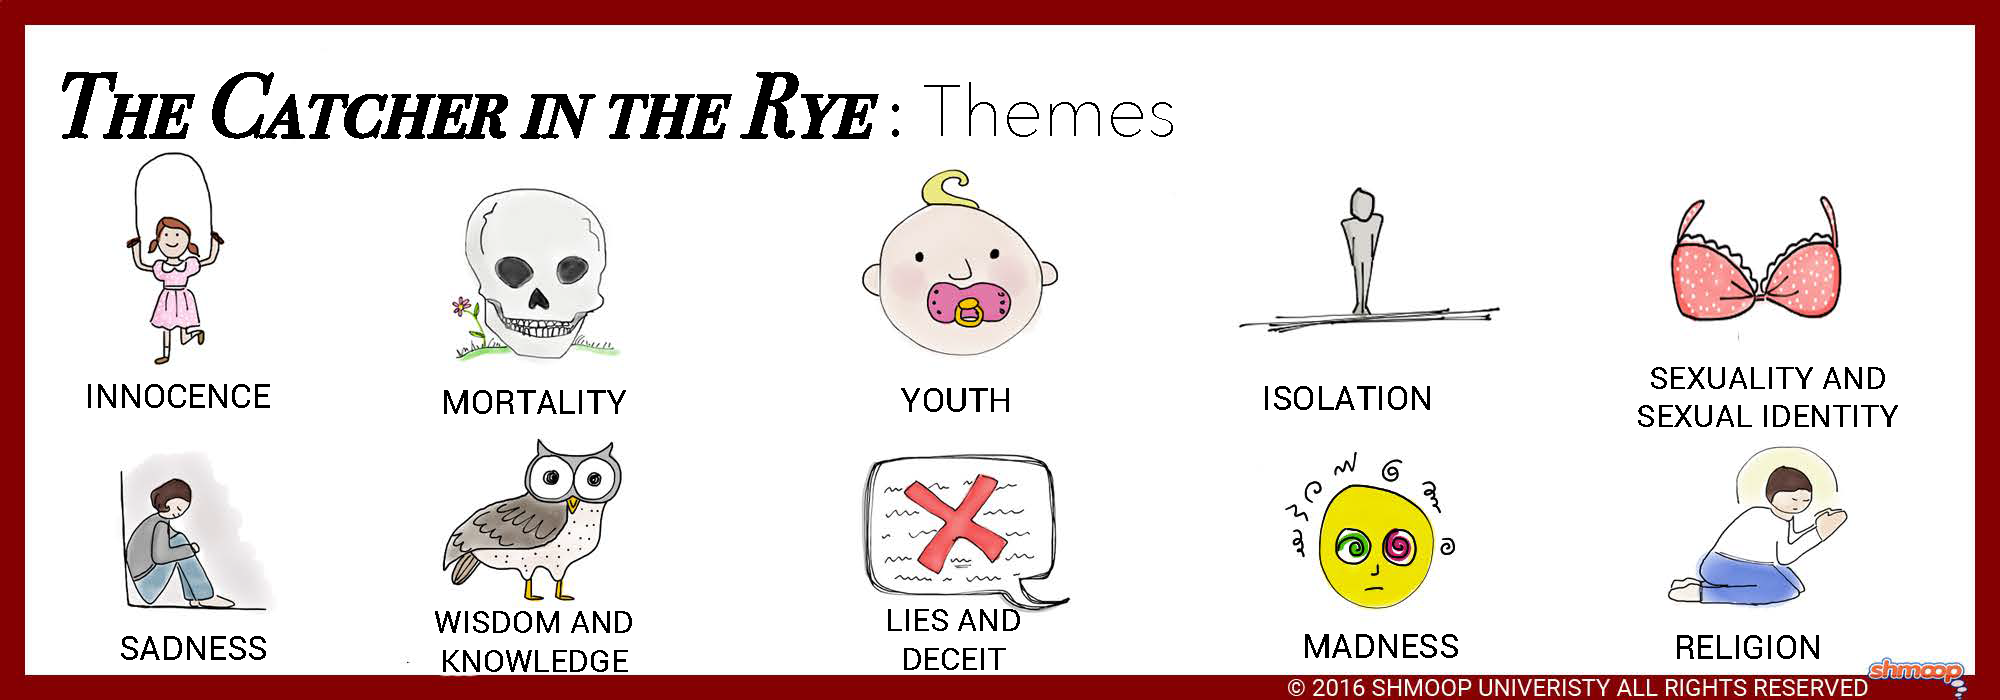 a literary analysis of holden caulfield in the catcher in the rye Written by jd salinger, the catcher in the rye is a classic fiction novel holden caulfield, the main character, writes in a hospital about events that had occurred before the previous.